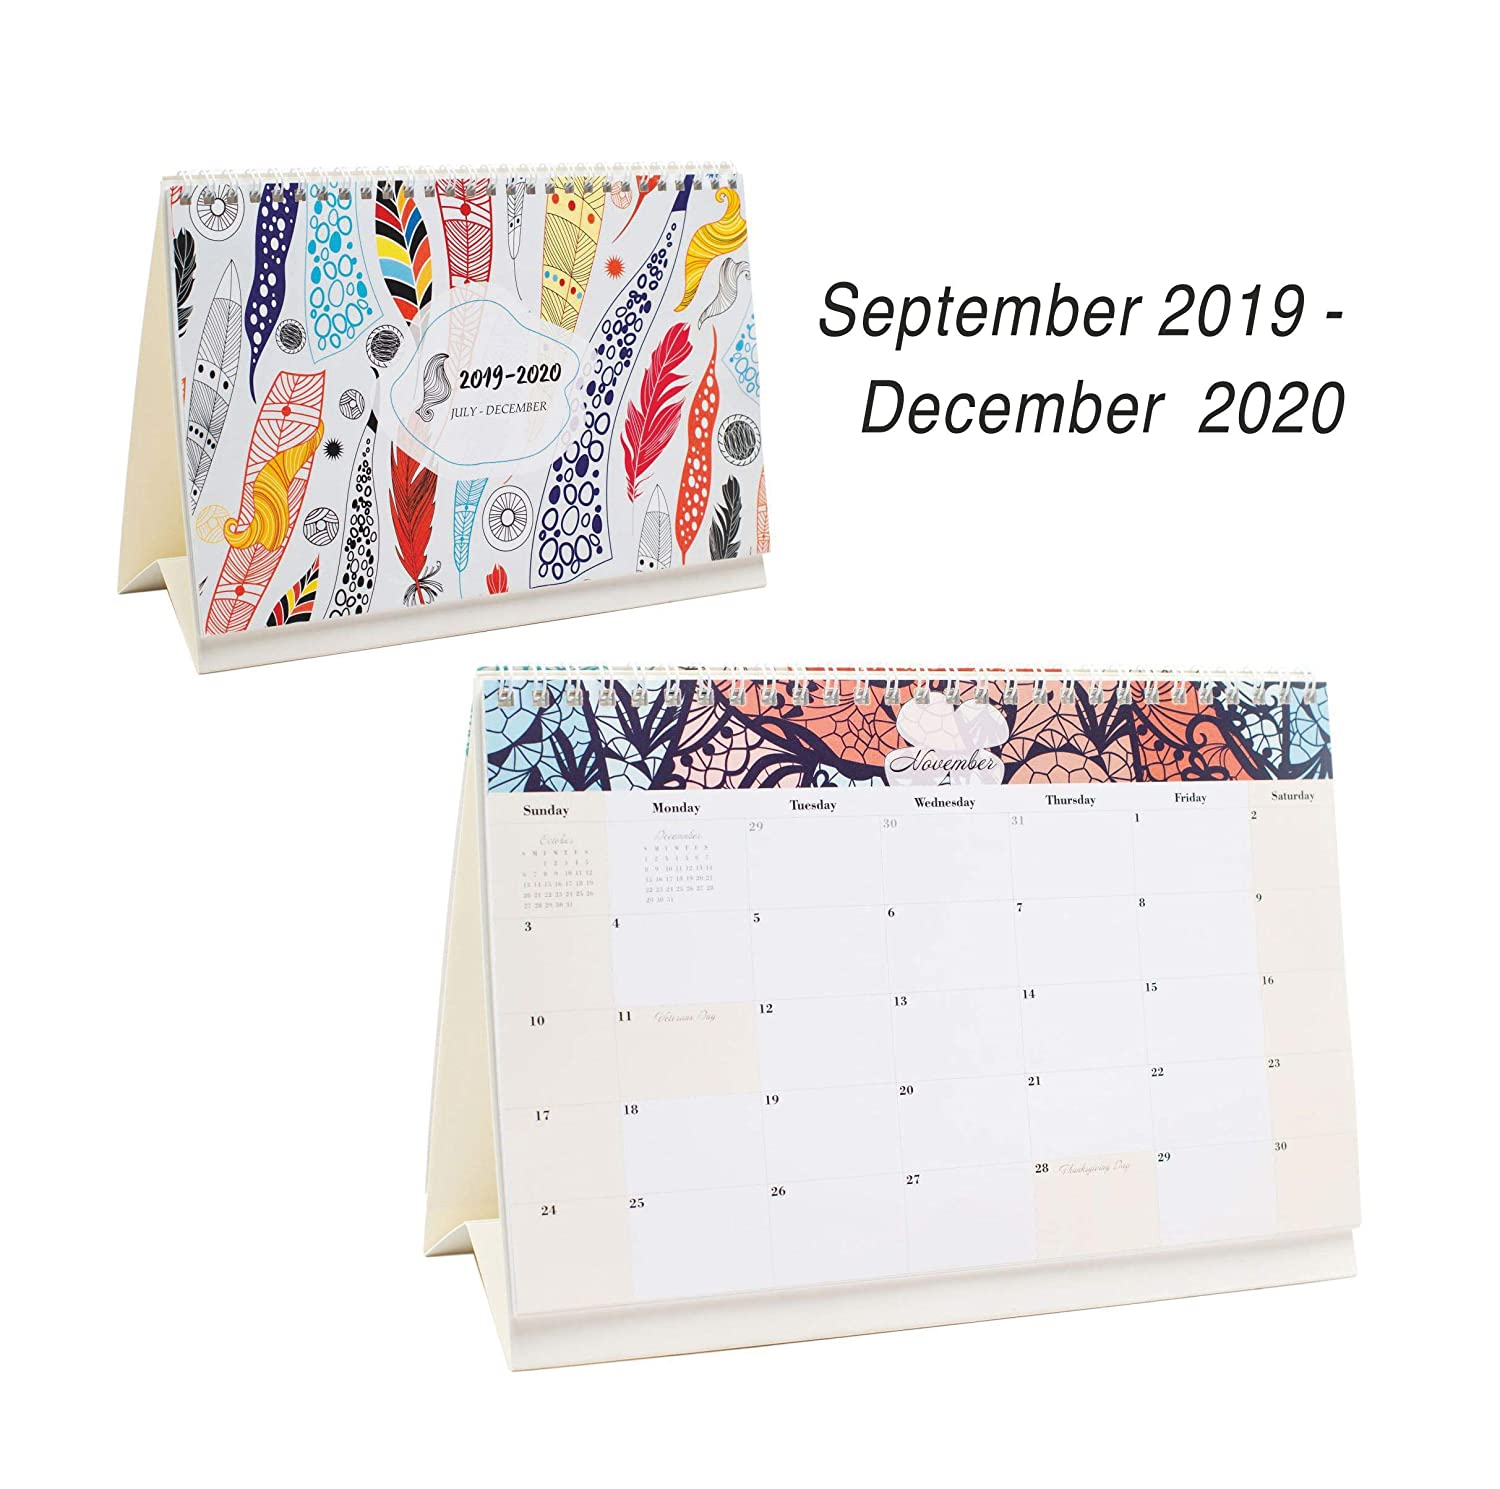 Desk Calendar From September 2019 Through December 2020 - 16 Months Colour Flip Calendar - Monthly Calendar Planner - Daily Planner - Desktop Calendar 2019-2020 - Tent Office Calendar